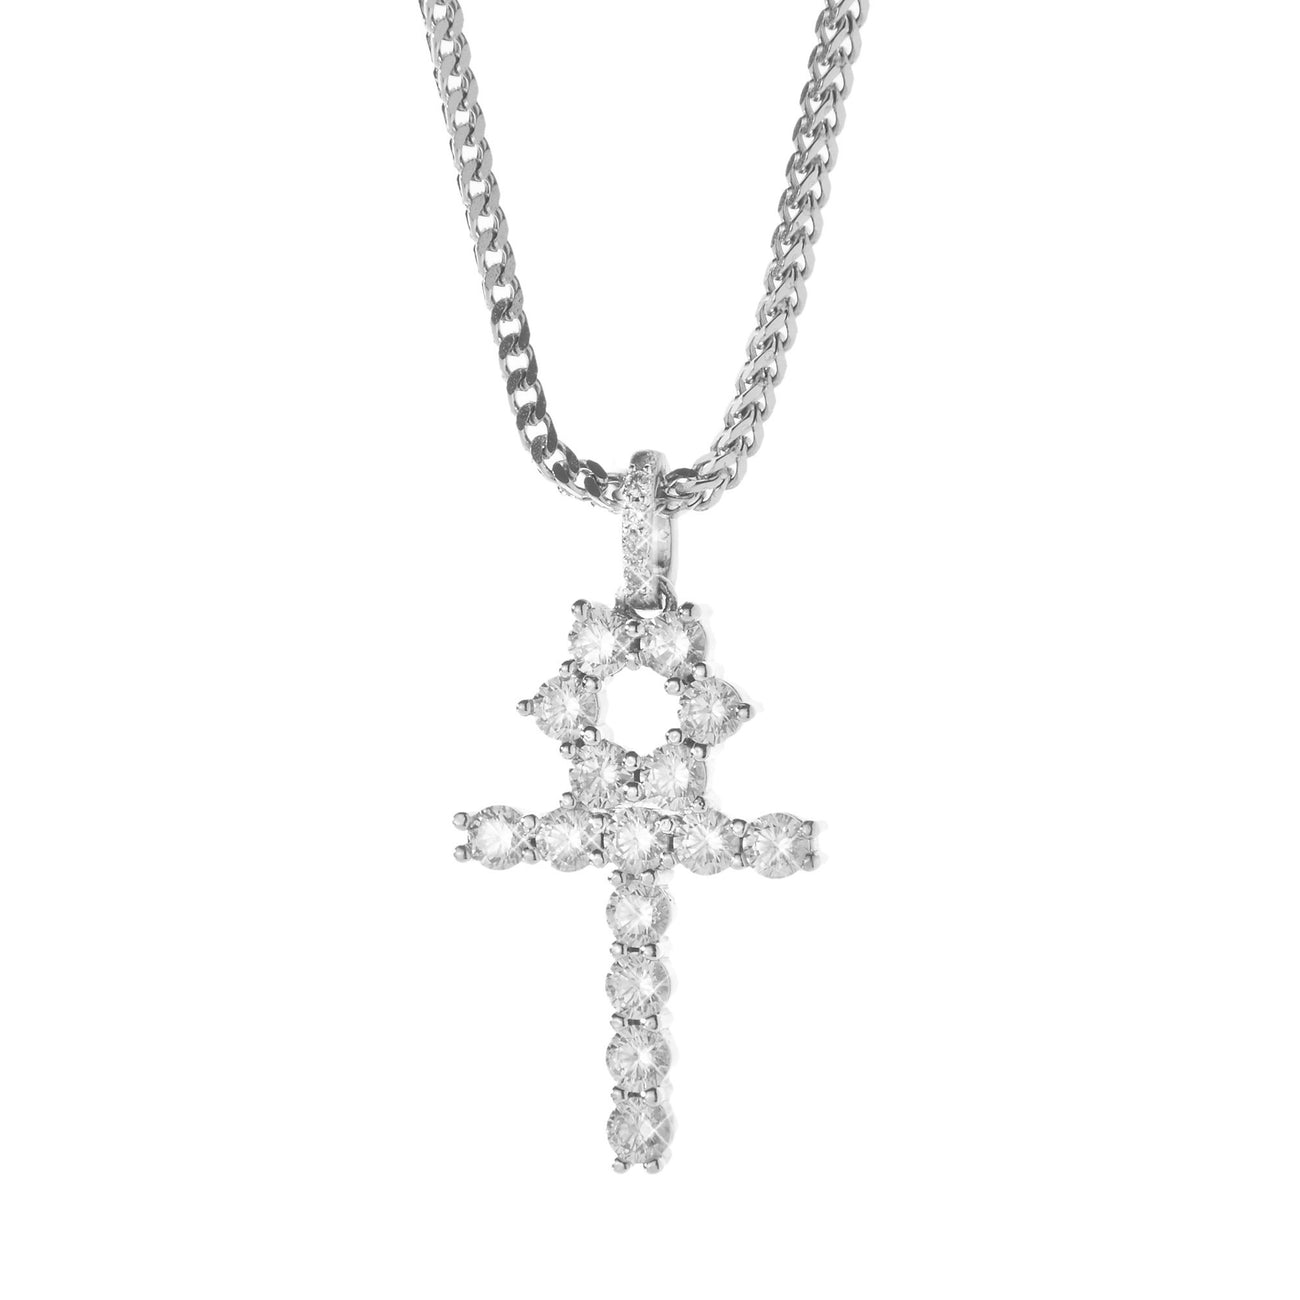 Necklace - Diamond Ankh Cross In White Rhodium